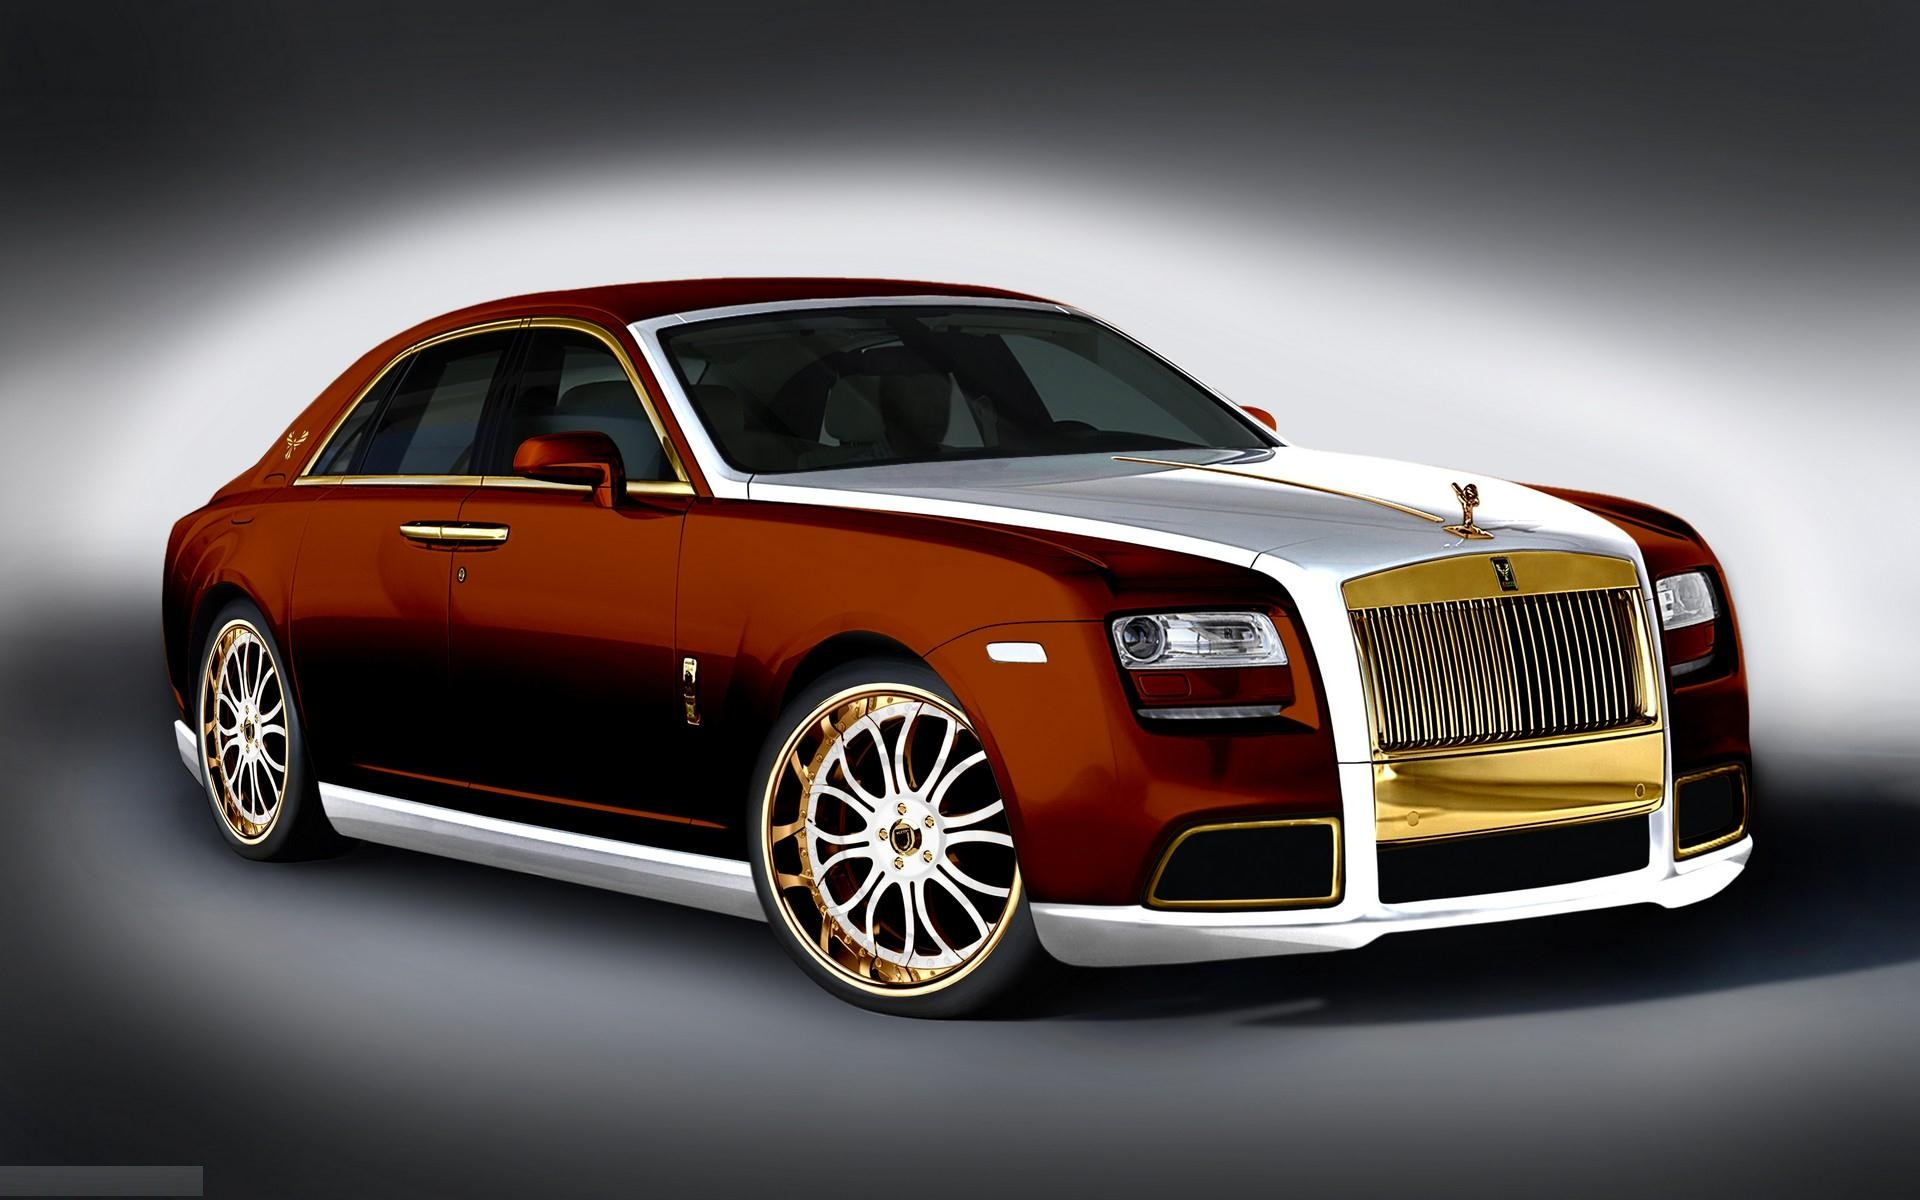 rolls royce ghost wallpaper hd 551 wallpaper walldiskpaper. Black Bedroom Furniture Sets. Home Design Ideas